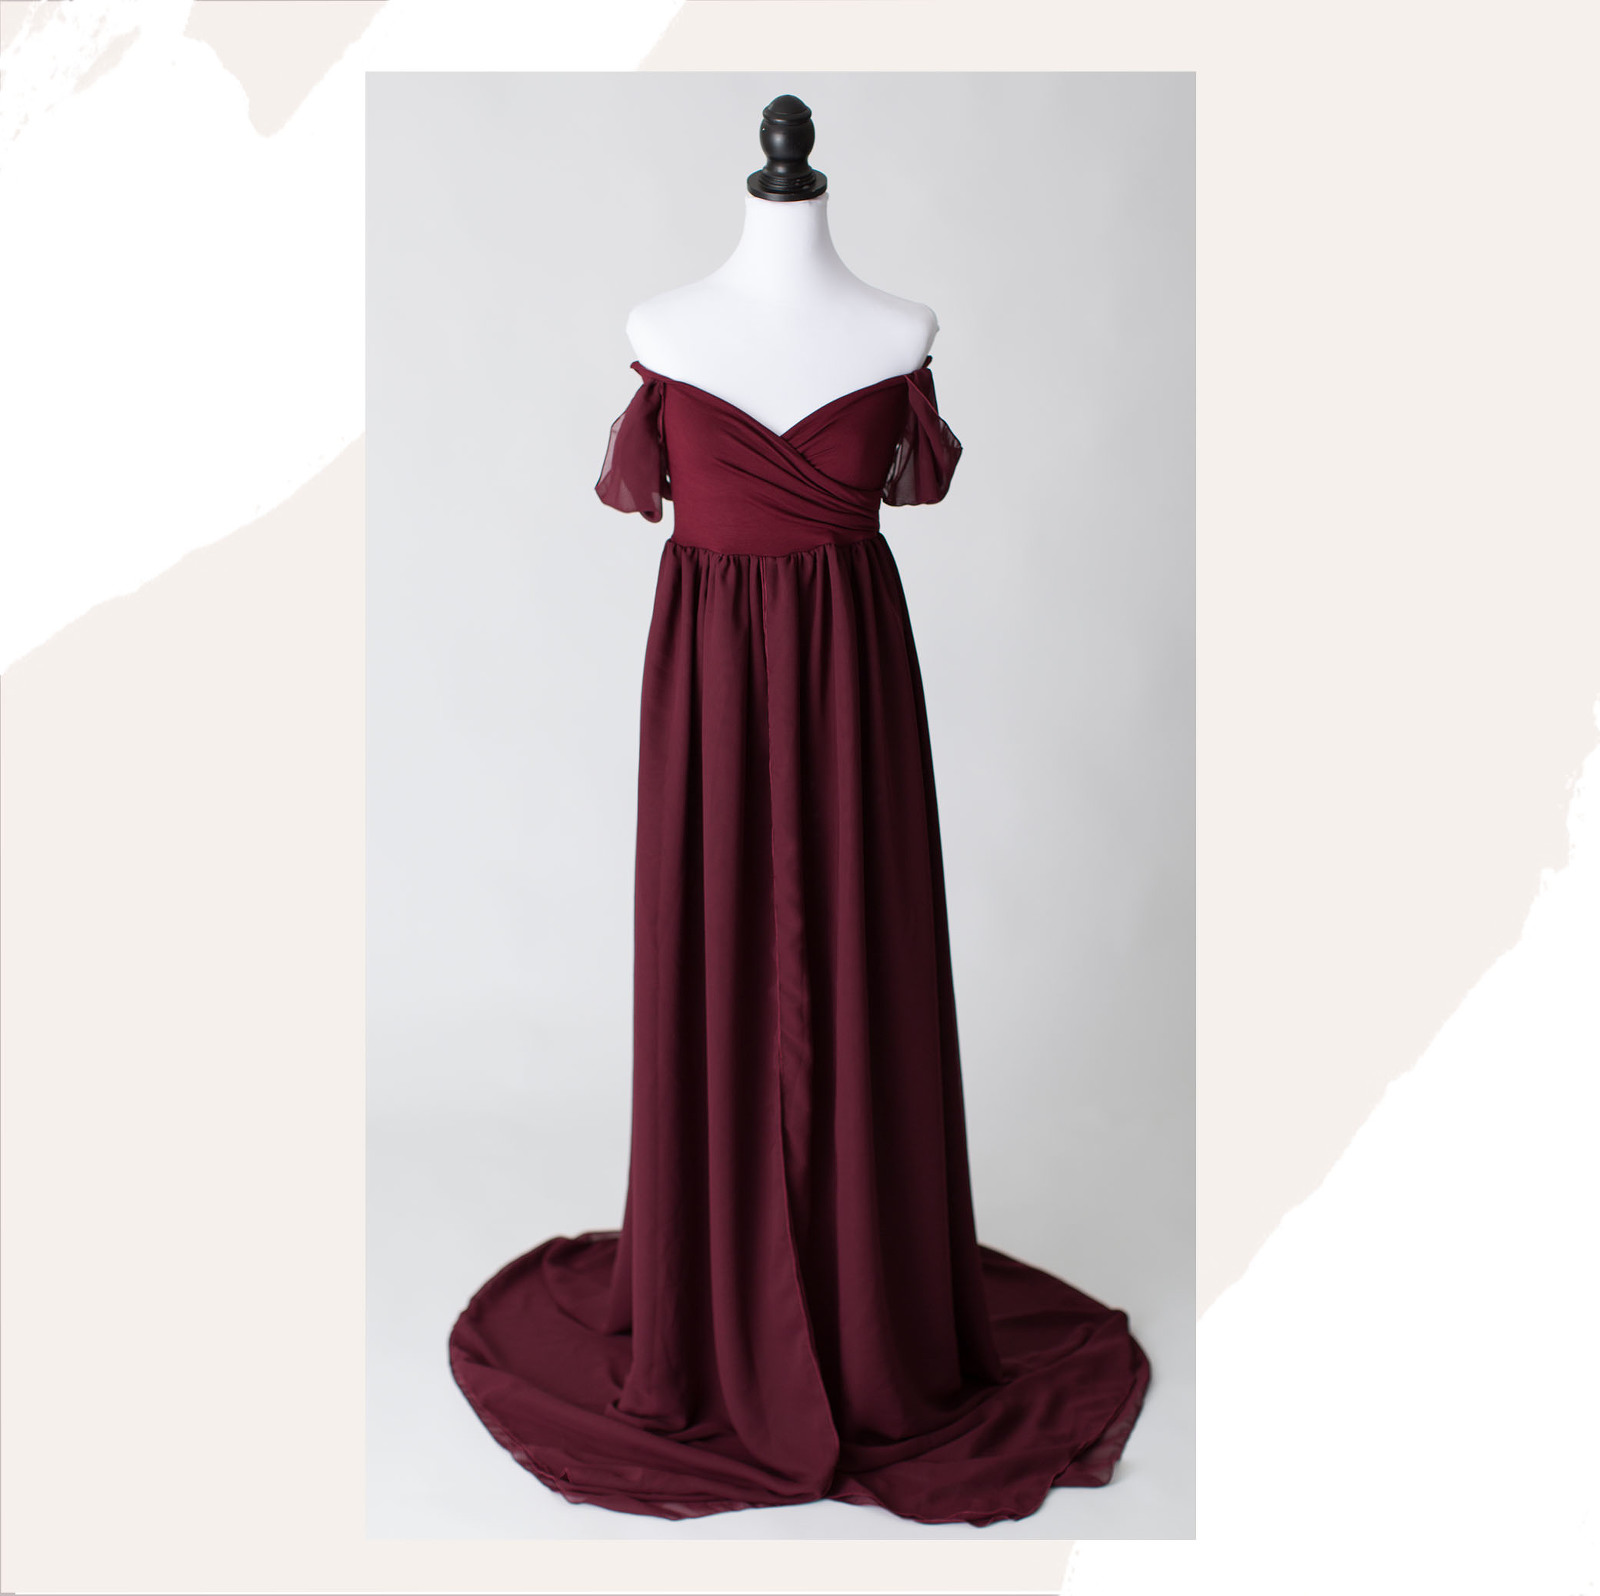 connecticut maternity gown burgundy